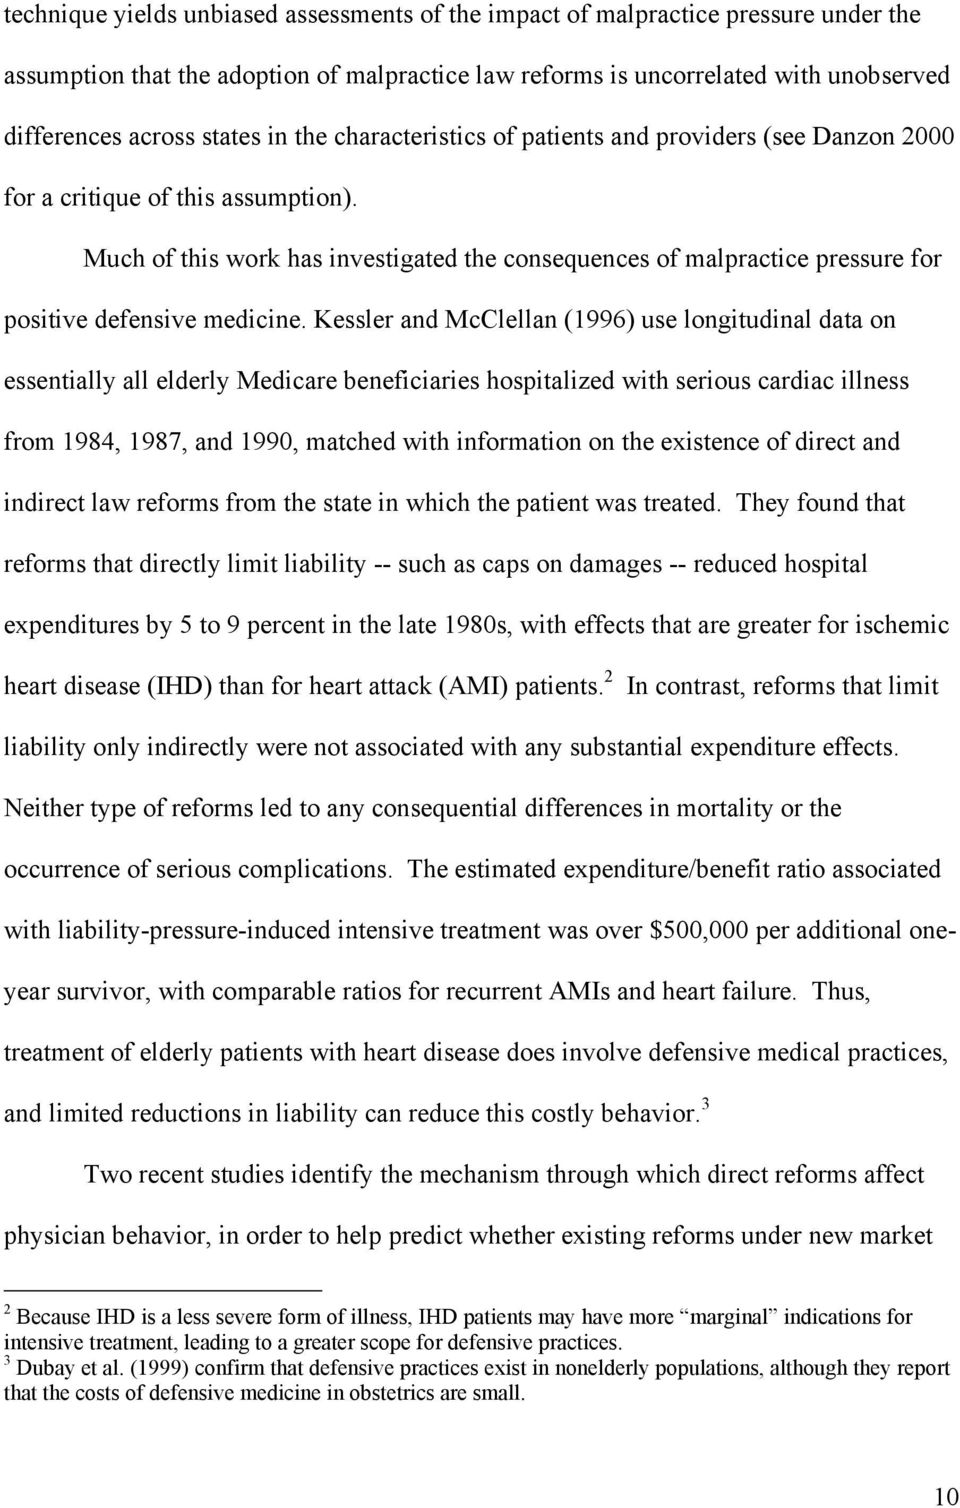 Much of this work has investigated the consequences of malpractice pressure for positive defensive medicine.